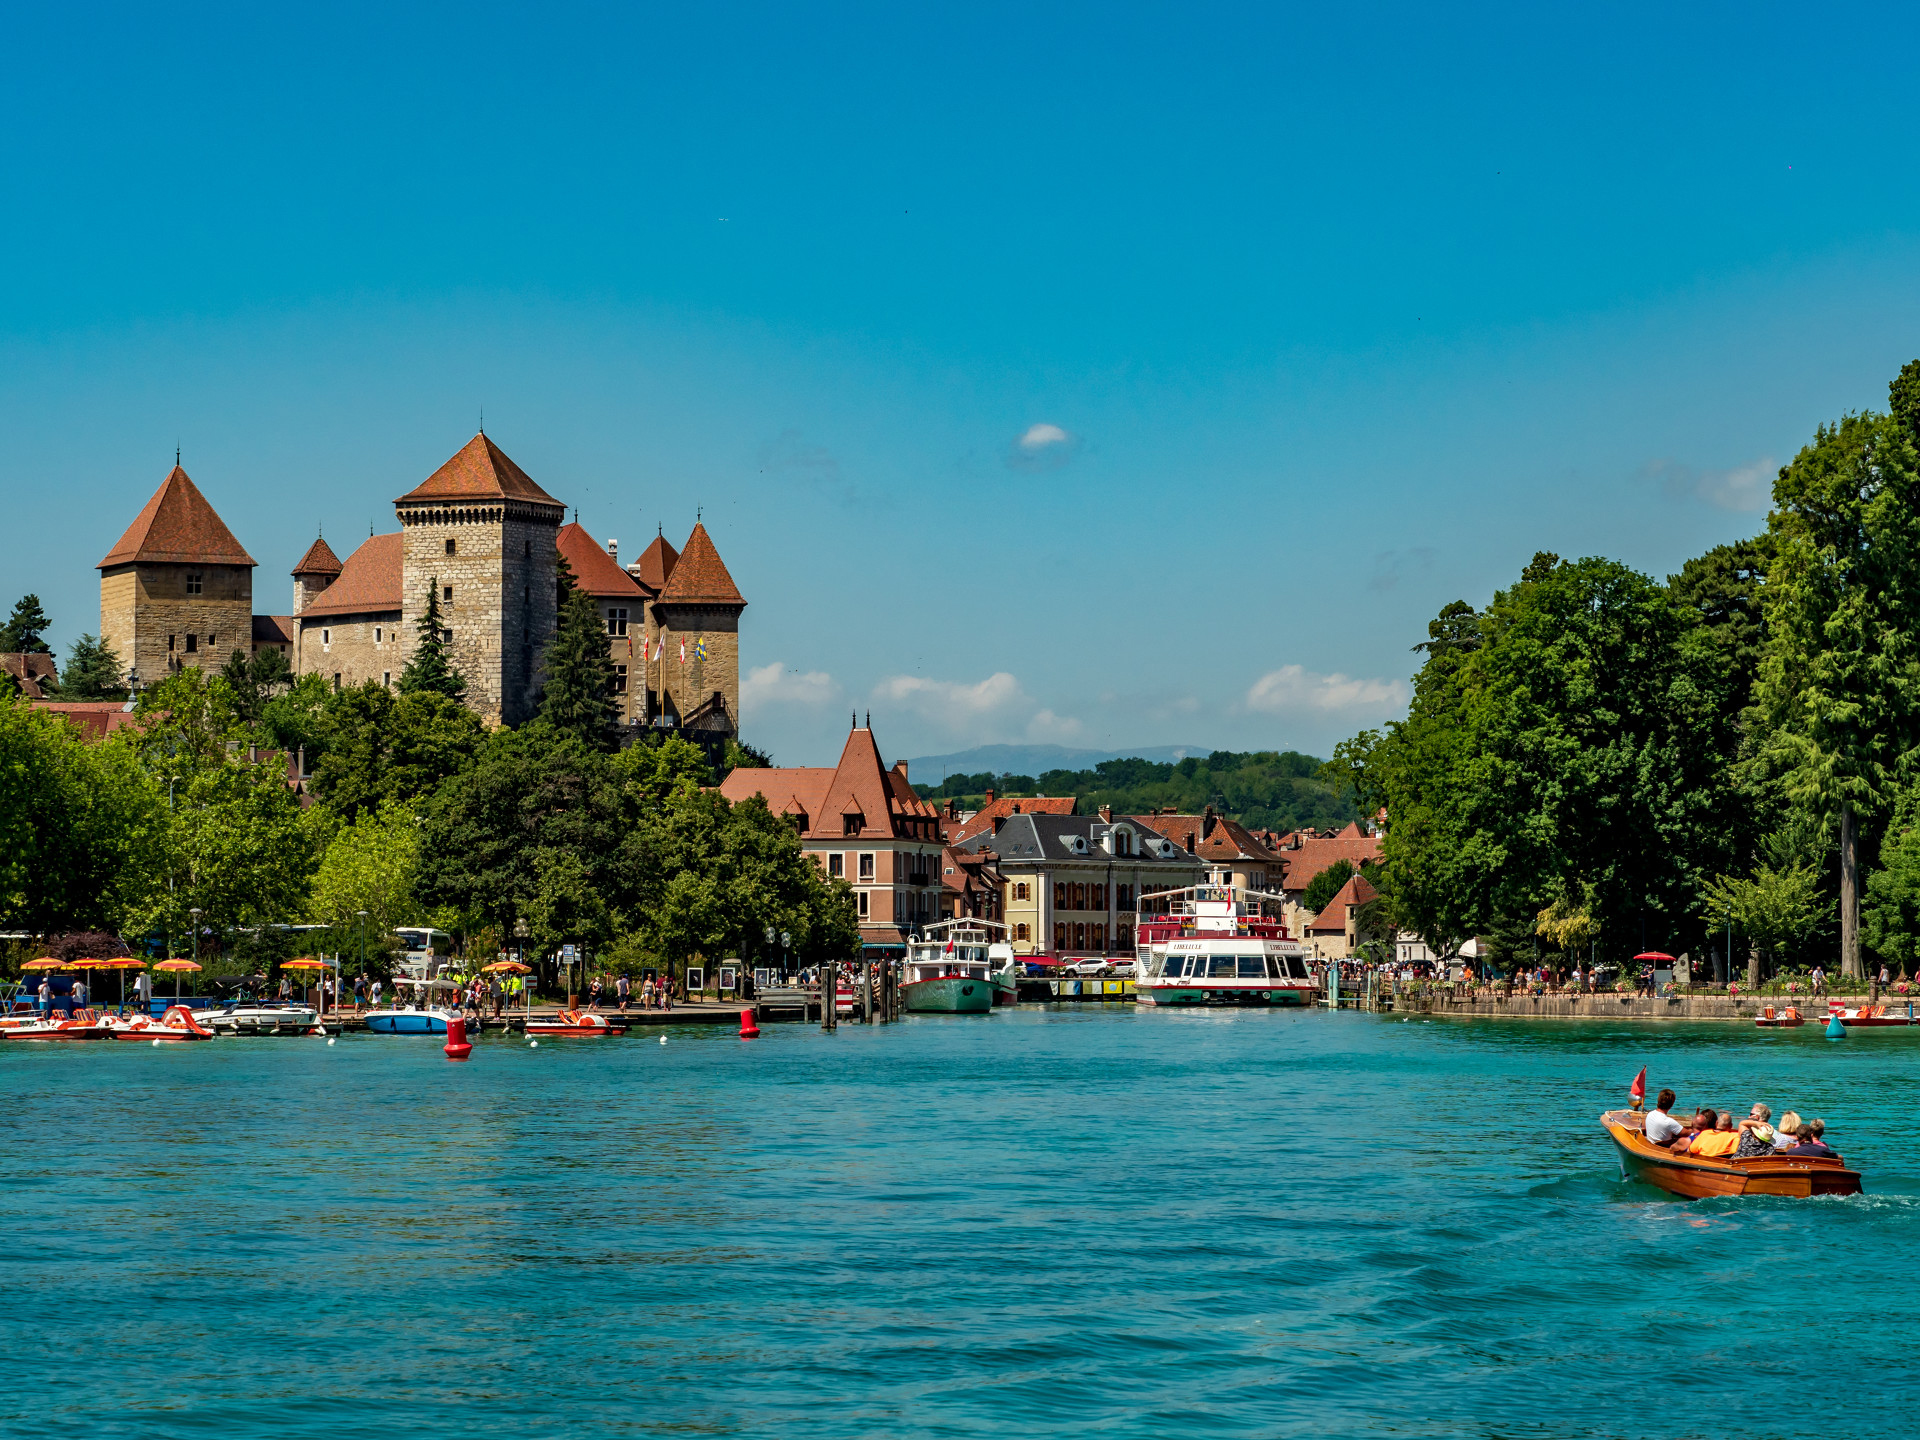 kt_2020_370_Keytours_excursions_Swisstours_annecy4_2048_10